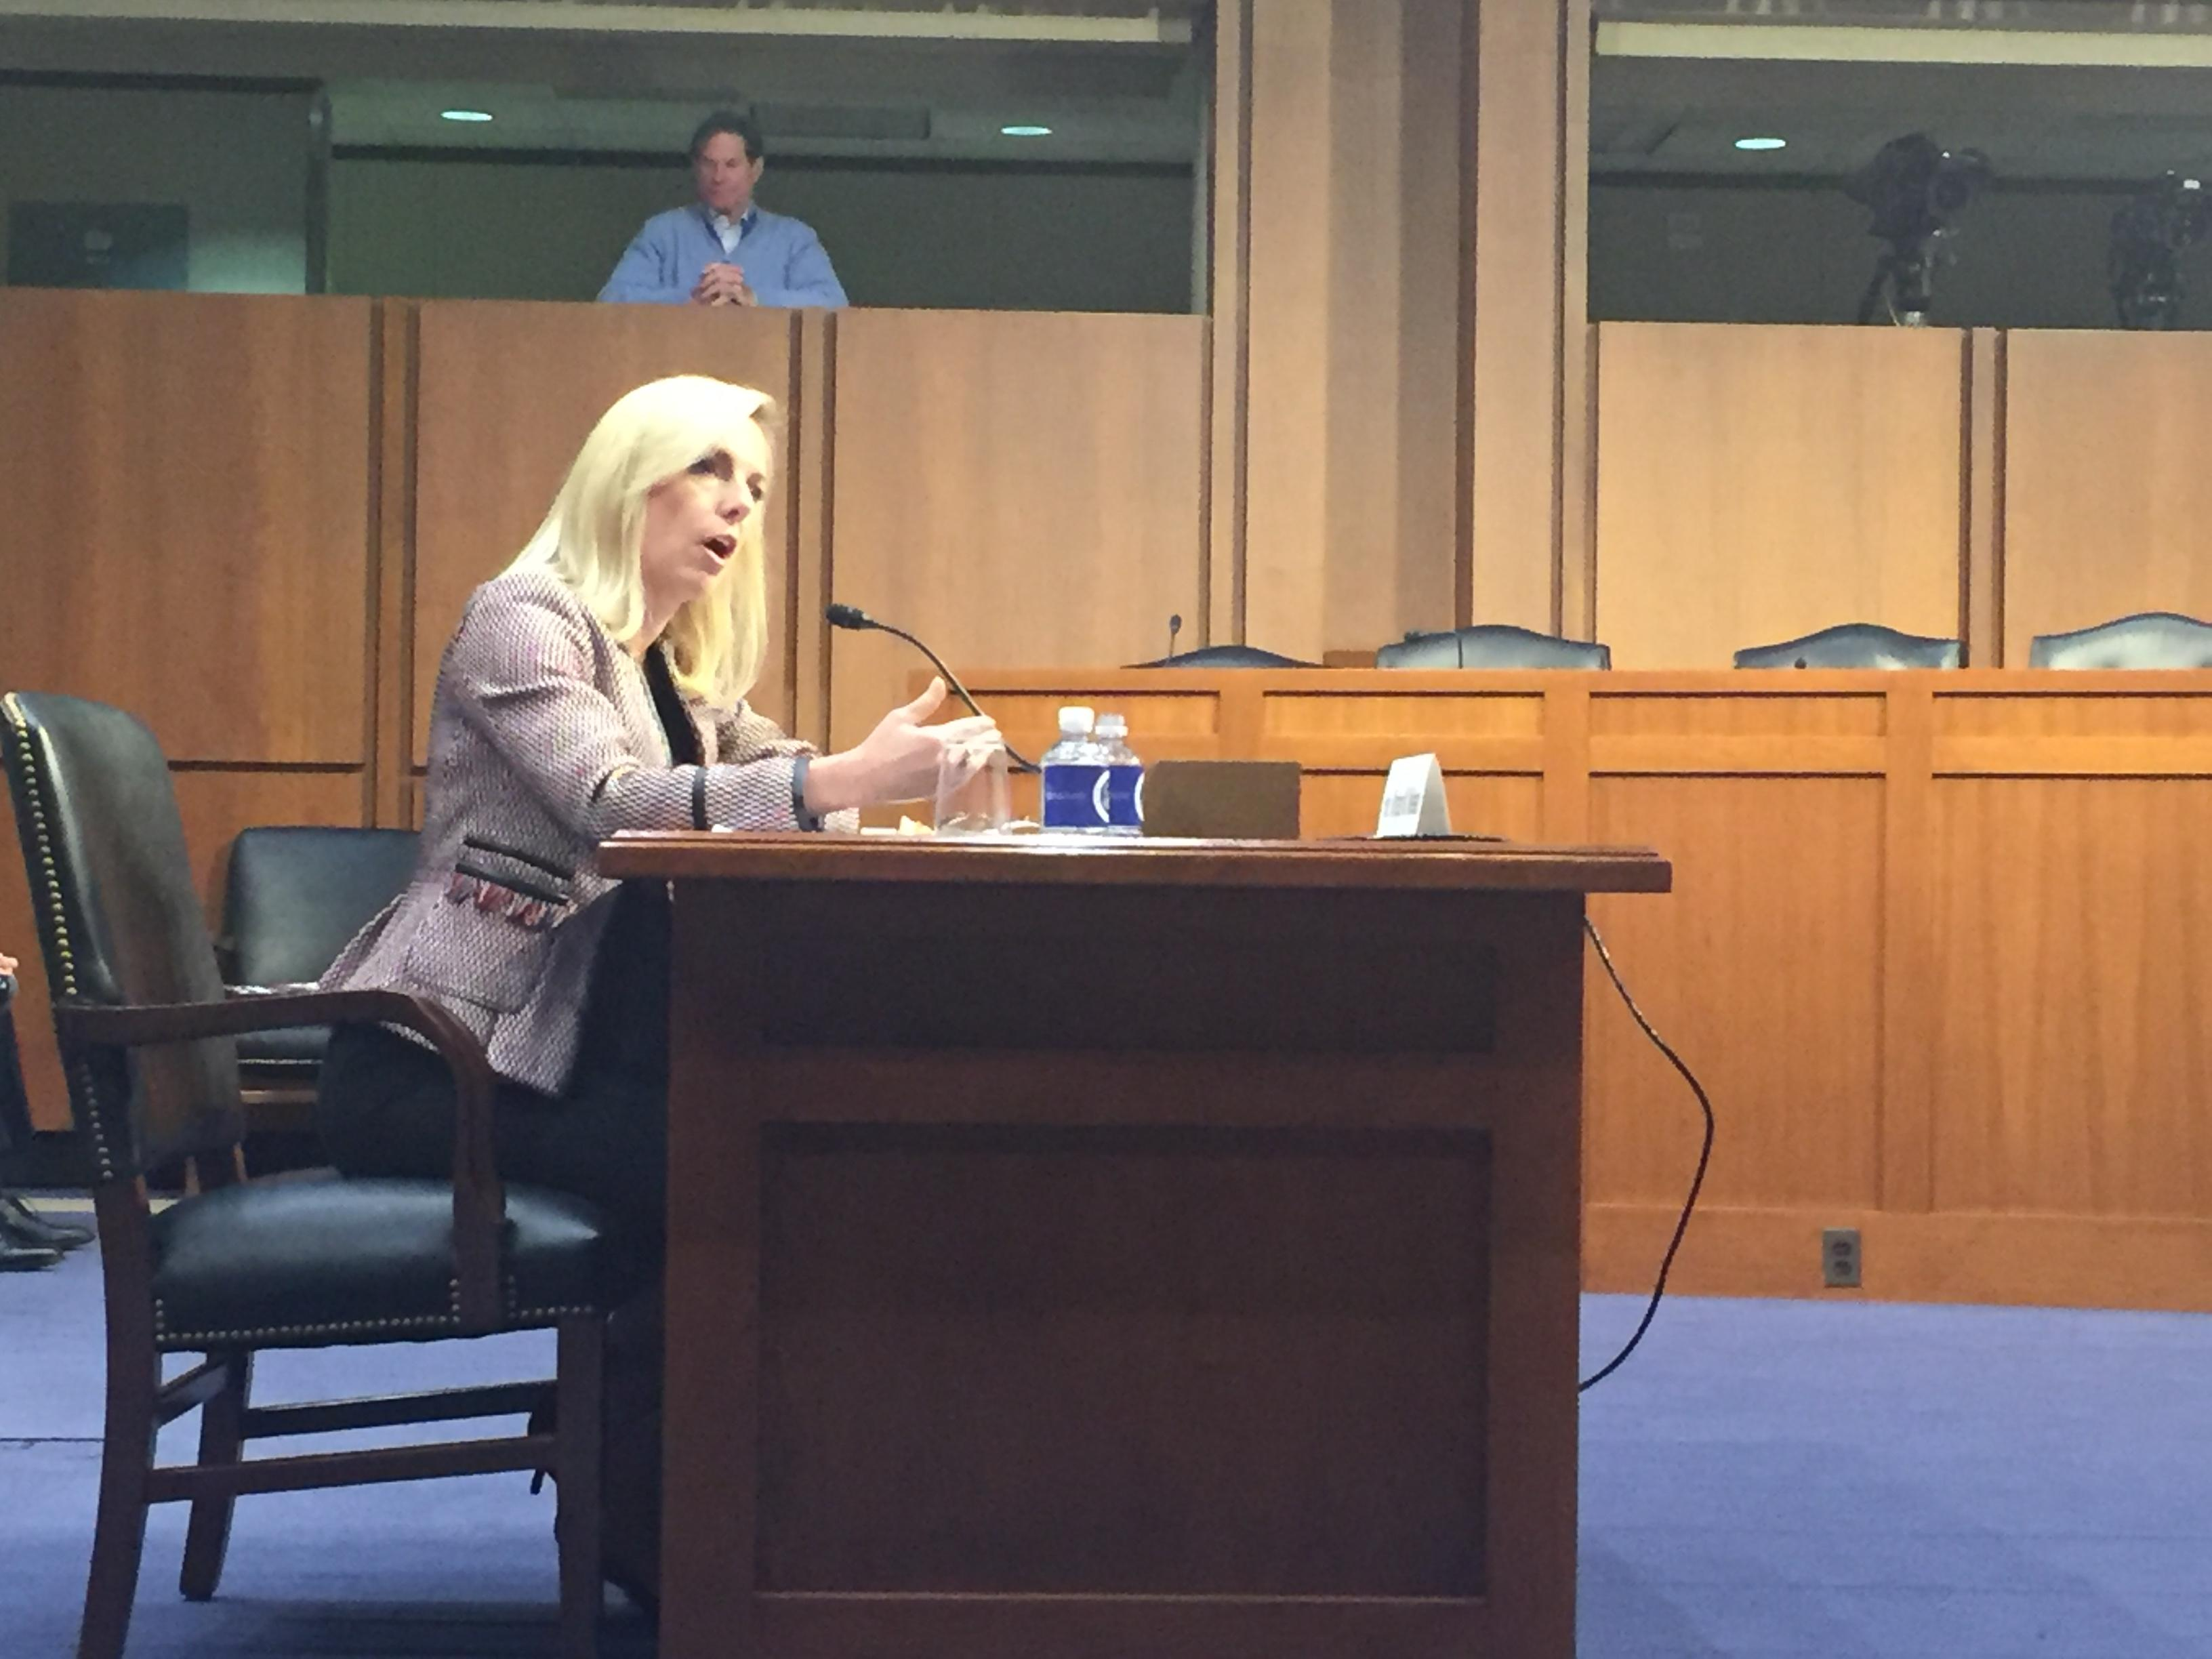 FILE: Department of Homeland Security Secretary Kirstjen Nielsen testifies before the Senate Judiciary Committee on Tuesday, January 16, 2018. (Photo: Sinclair Broadcast Group)